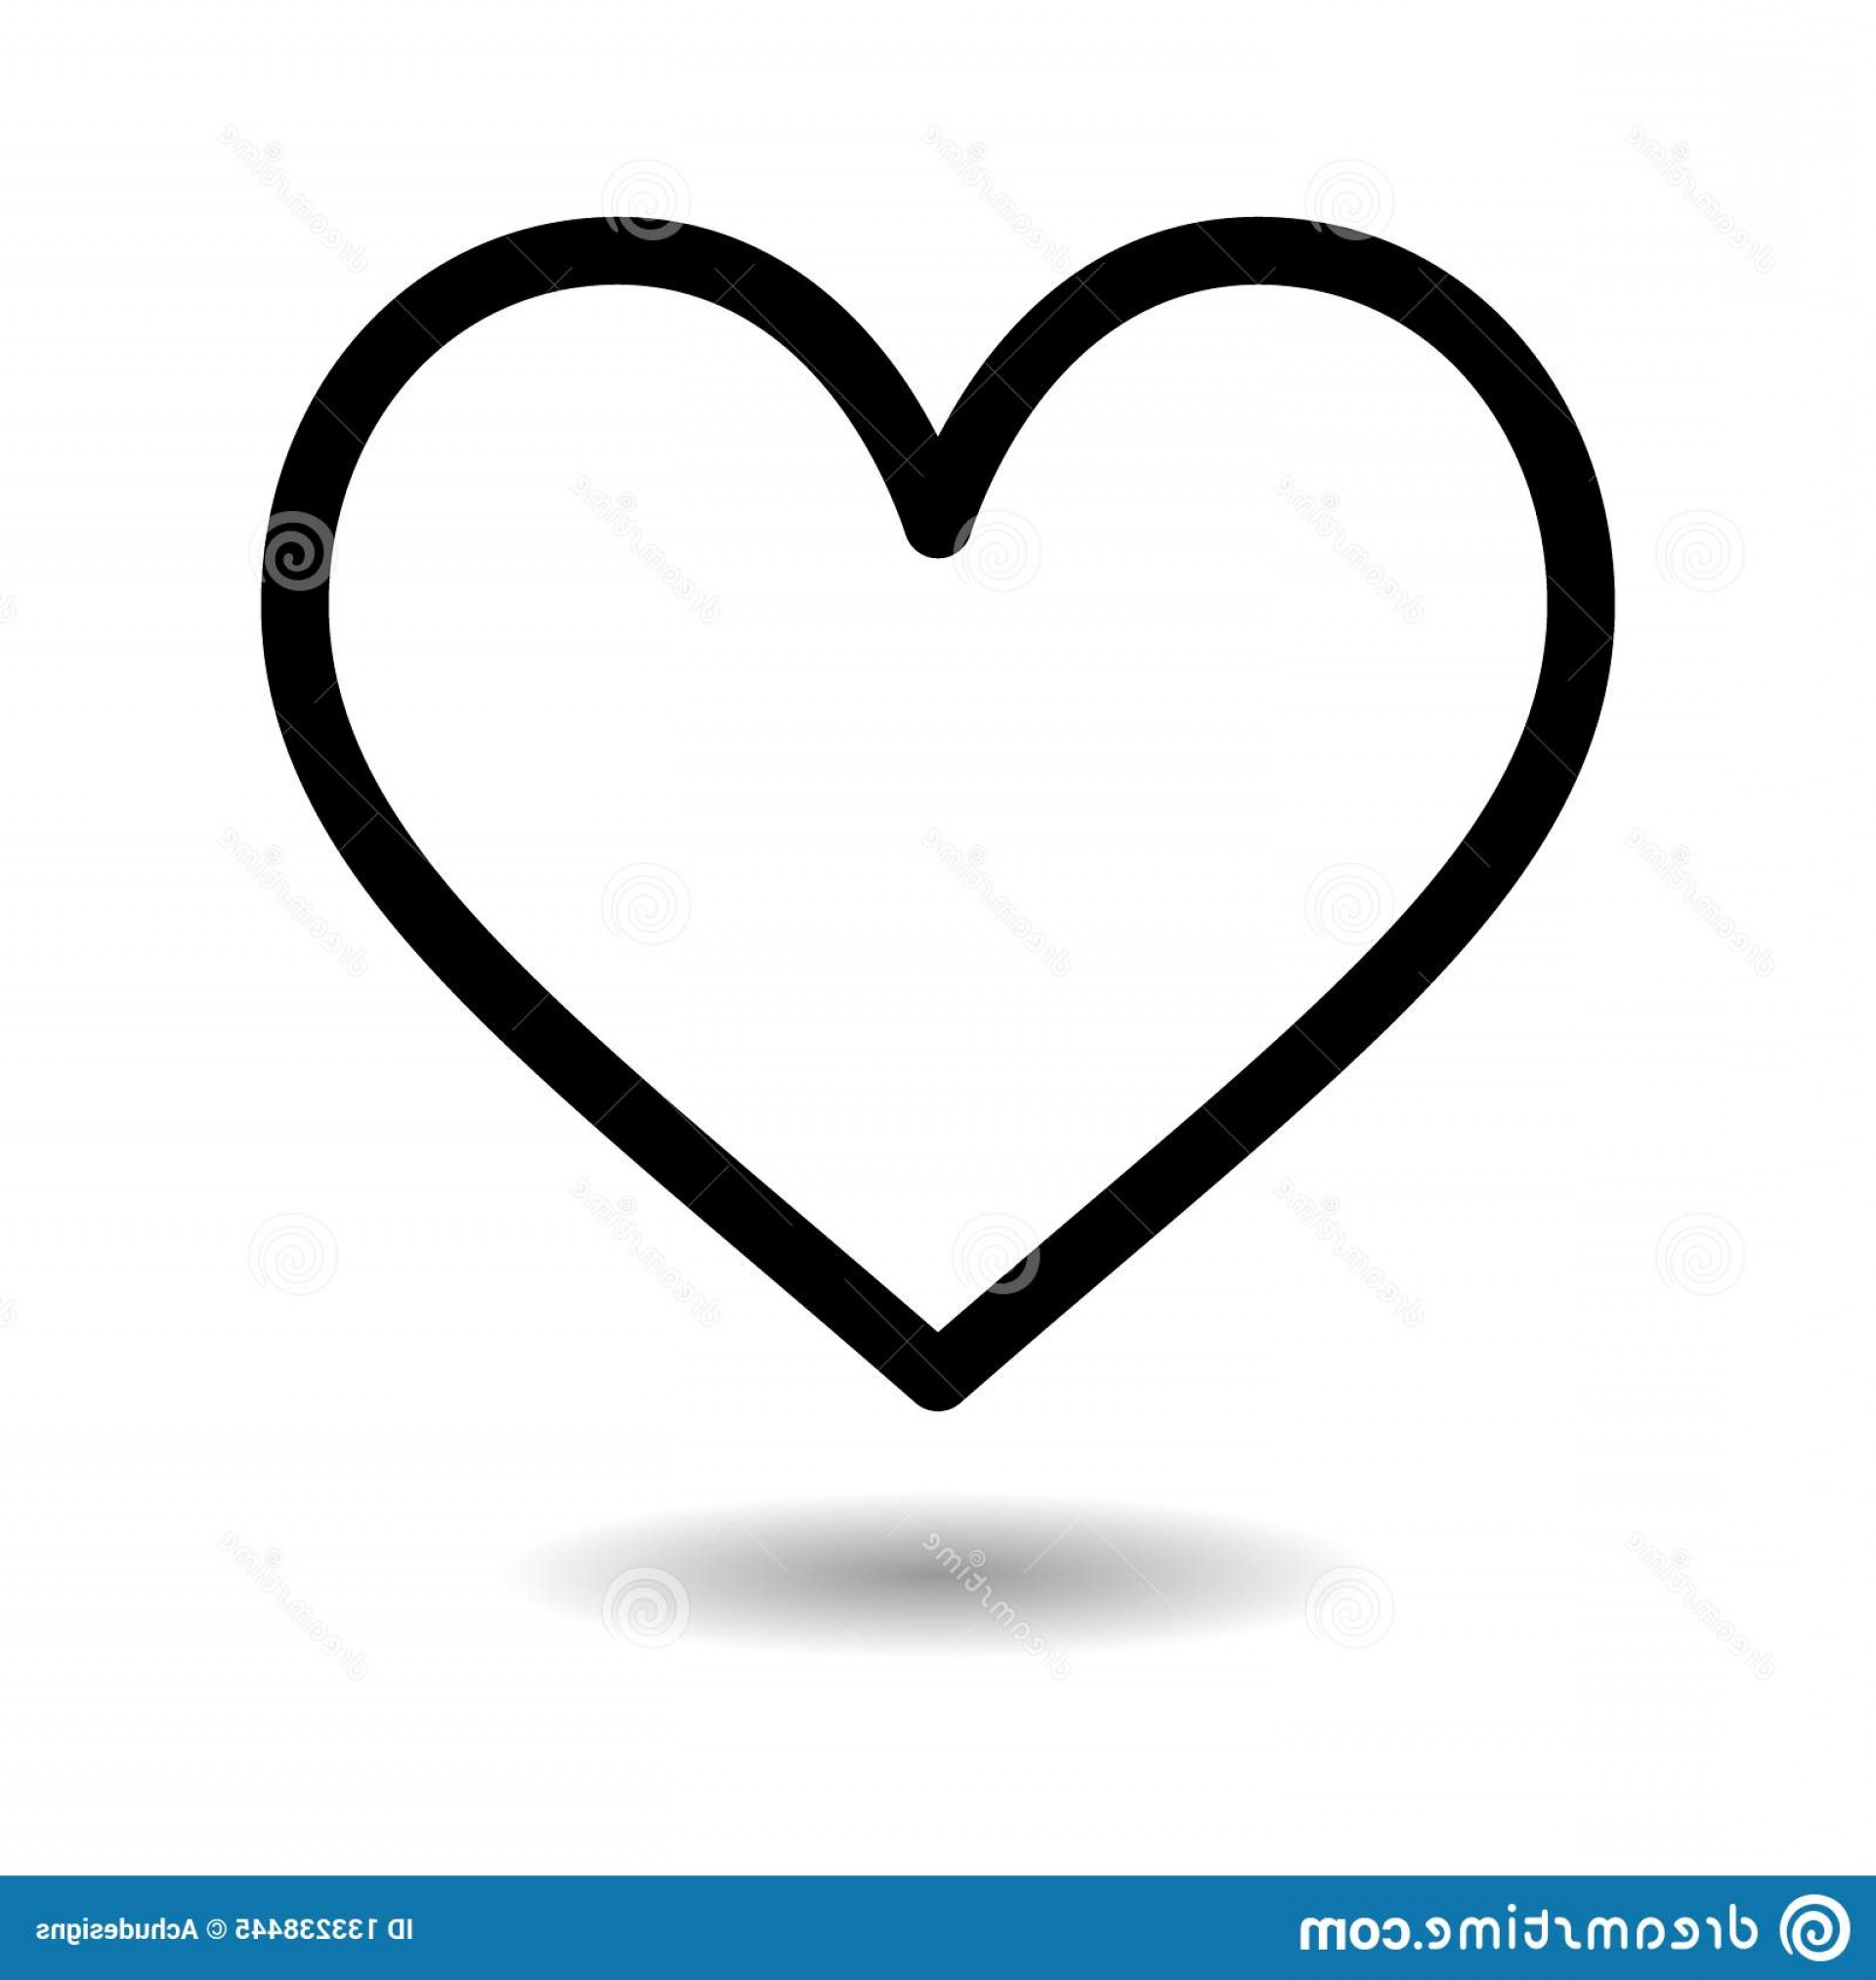 In Icon Stock Vector: Simple Vector Filled Flat Heart Icon Solid Pictogram Isolated White Background Love Valentines Day Symbol Heart Icon Image